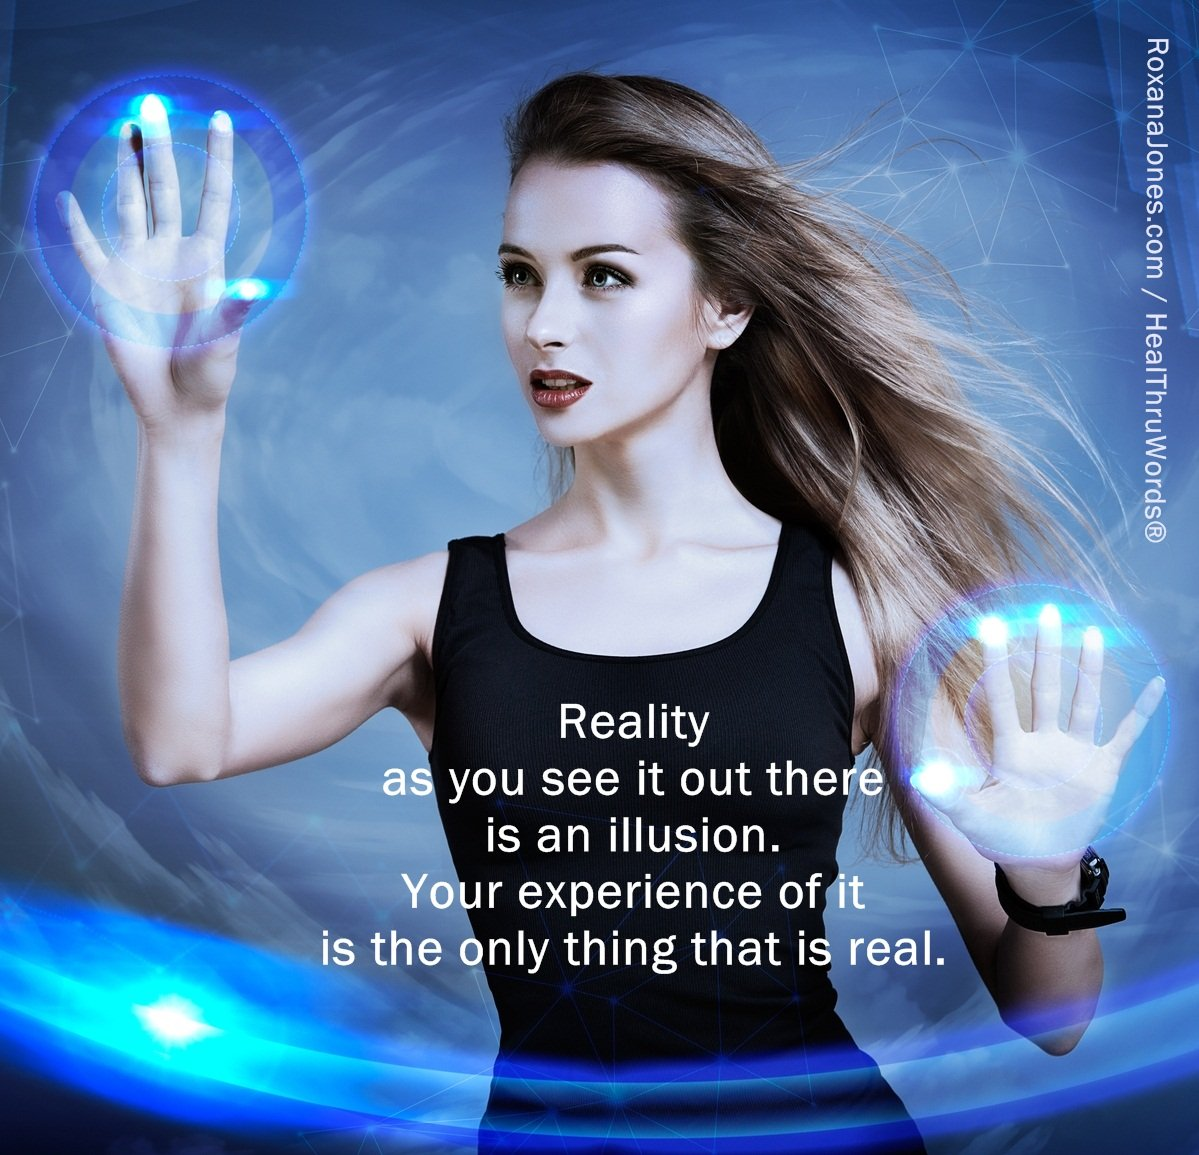 Inspirational Image: Focus on Experience